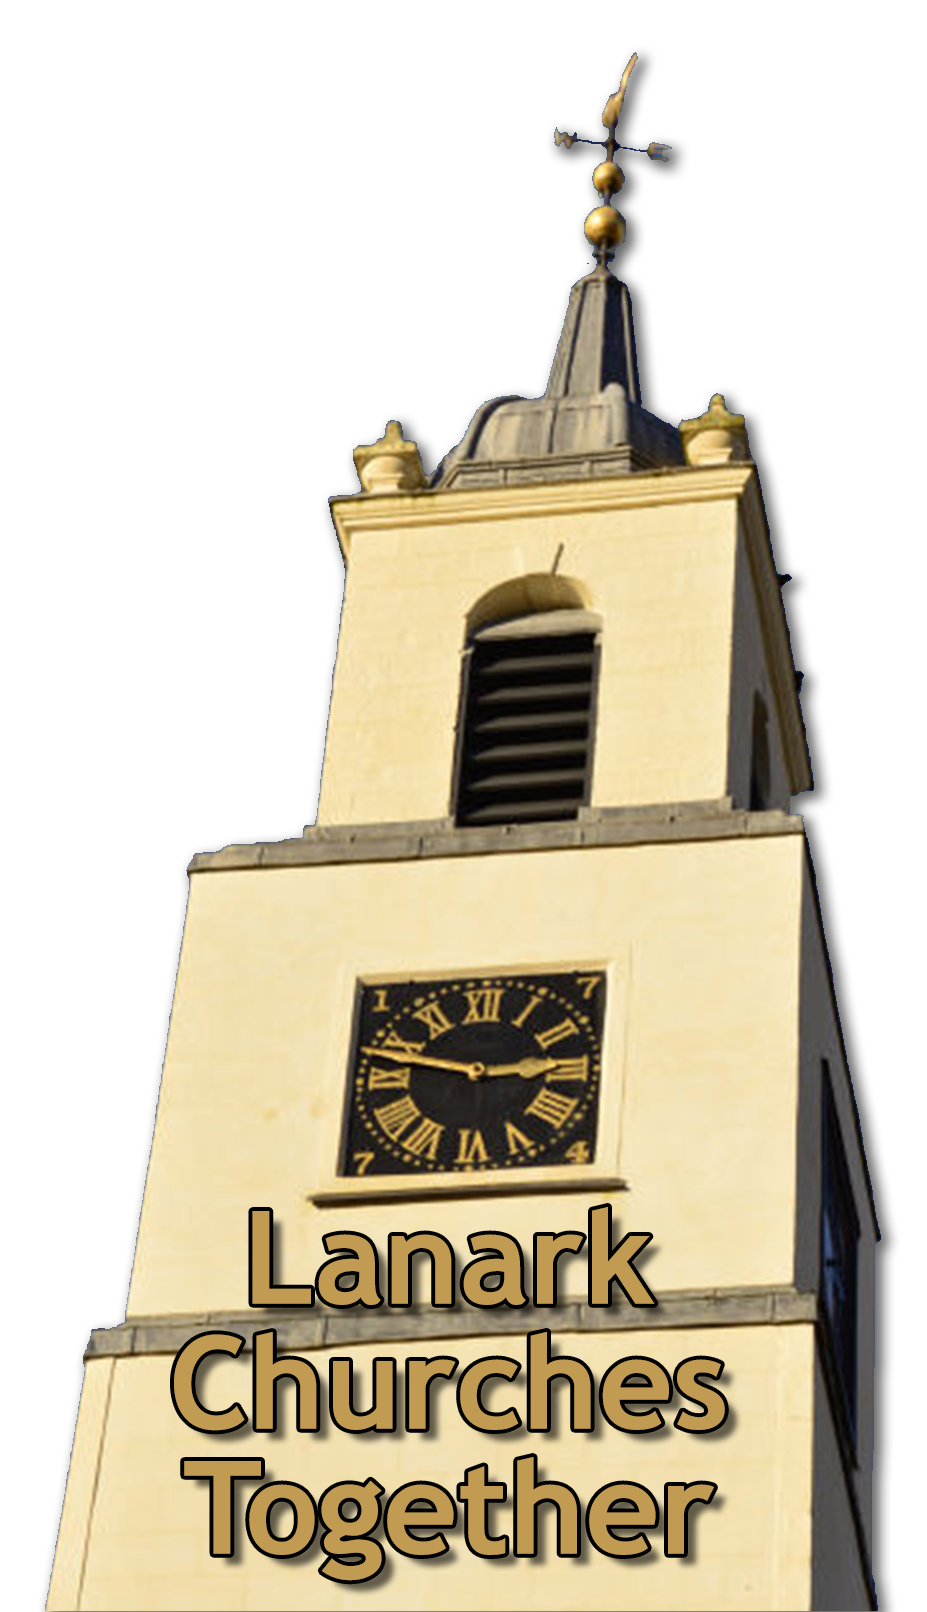 The Churches in Lanark